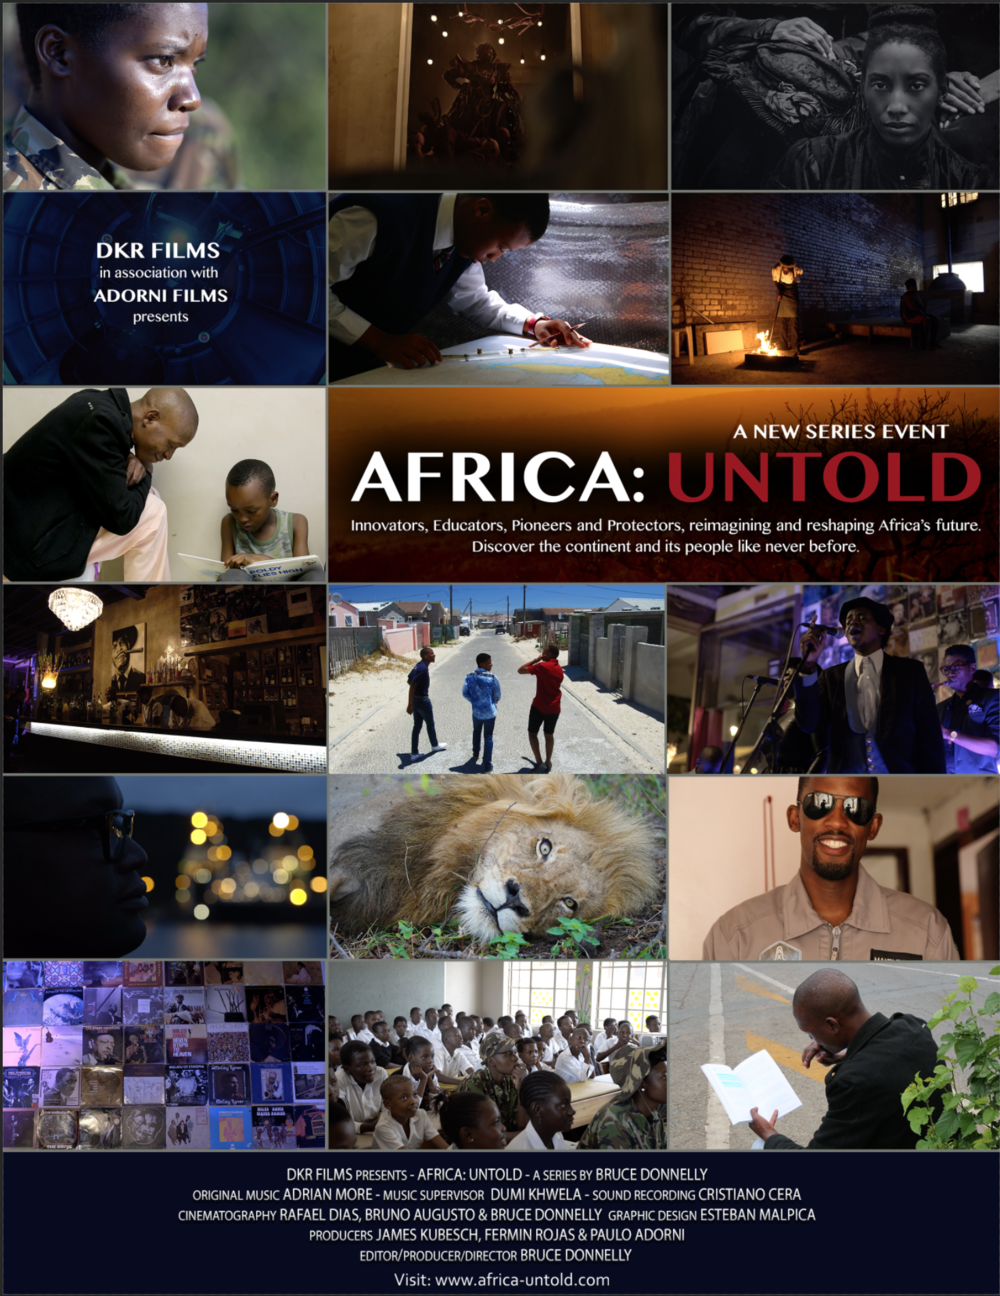 AFRICA: UNTOLD - DOCUMENTARY SERIES